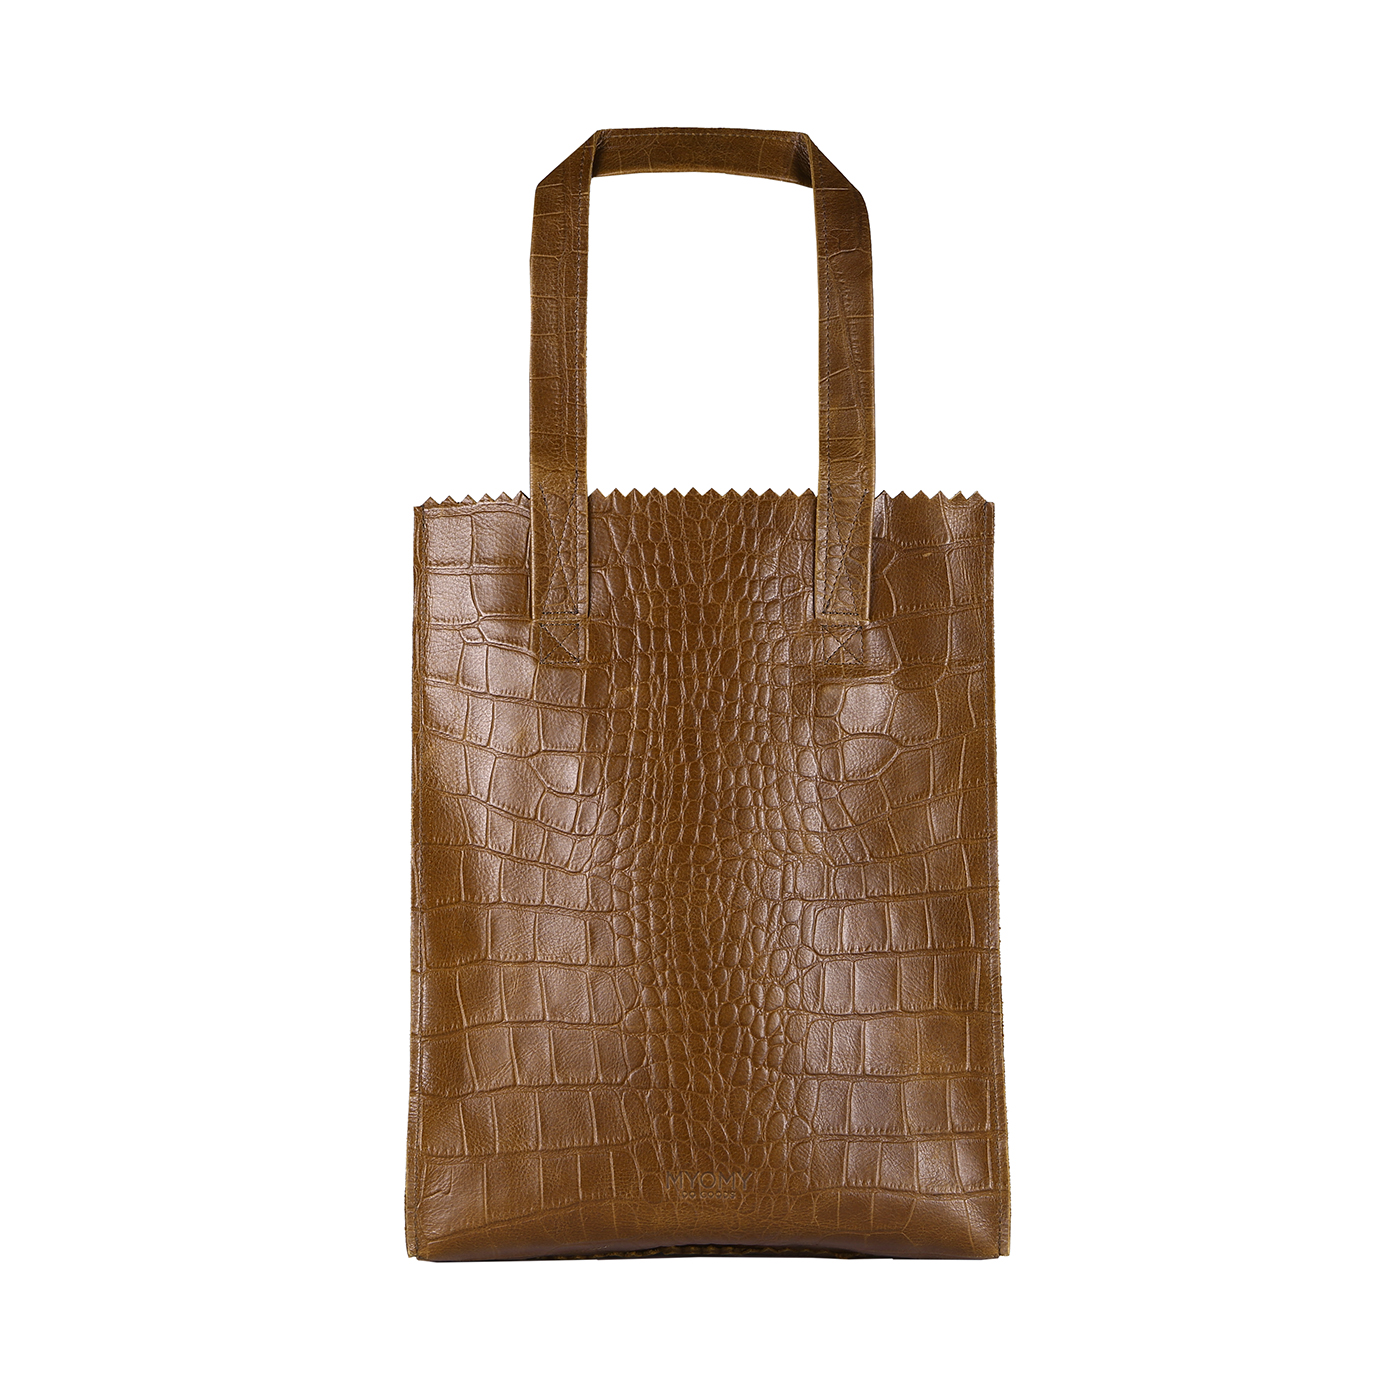 MY PAPER BAG Long handle zip – croco original